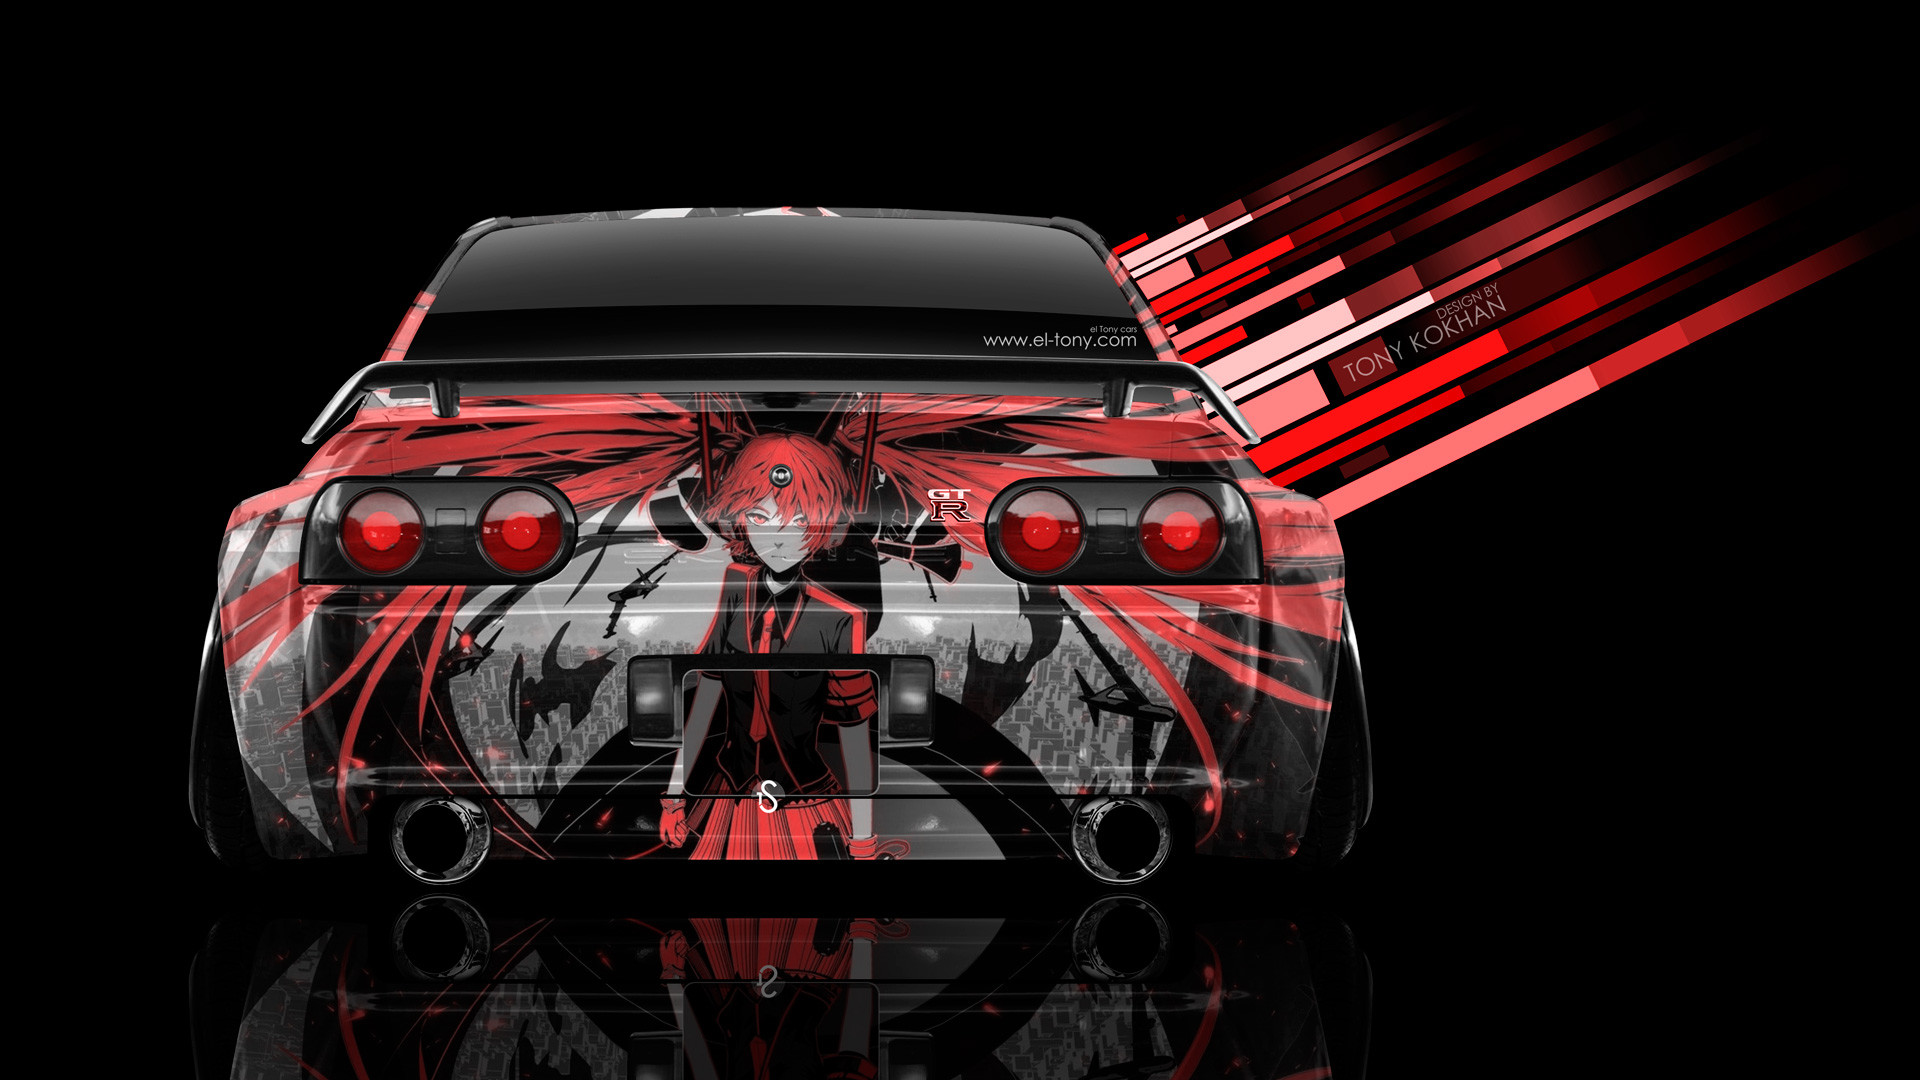 1920x1080 CK-Modelcars - T9-1800198: Nissan Skyline GT-R year 2017 orange